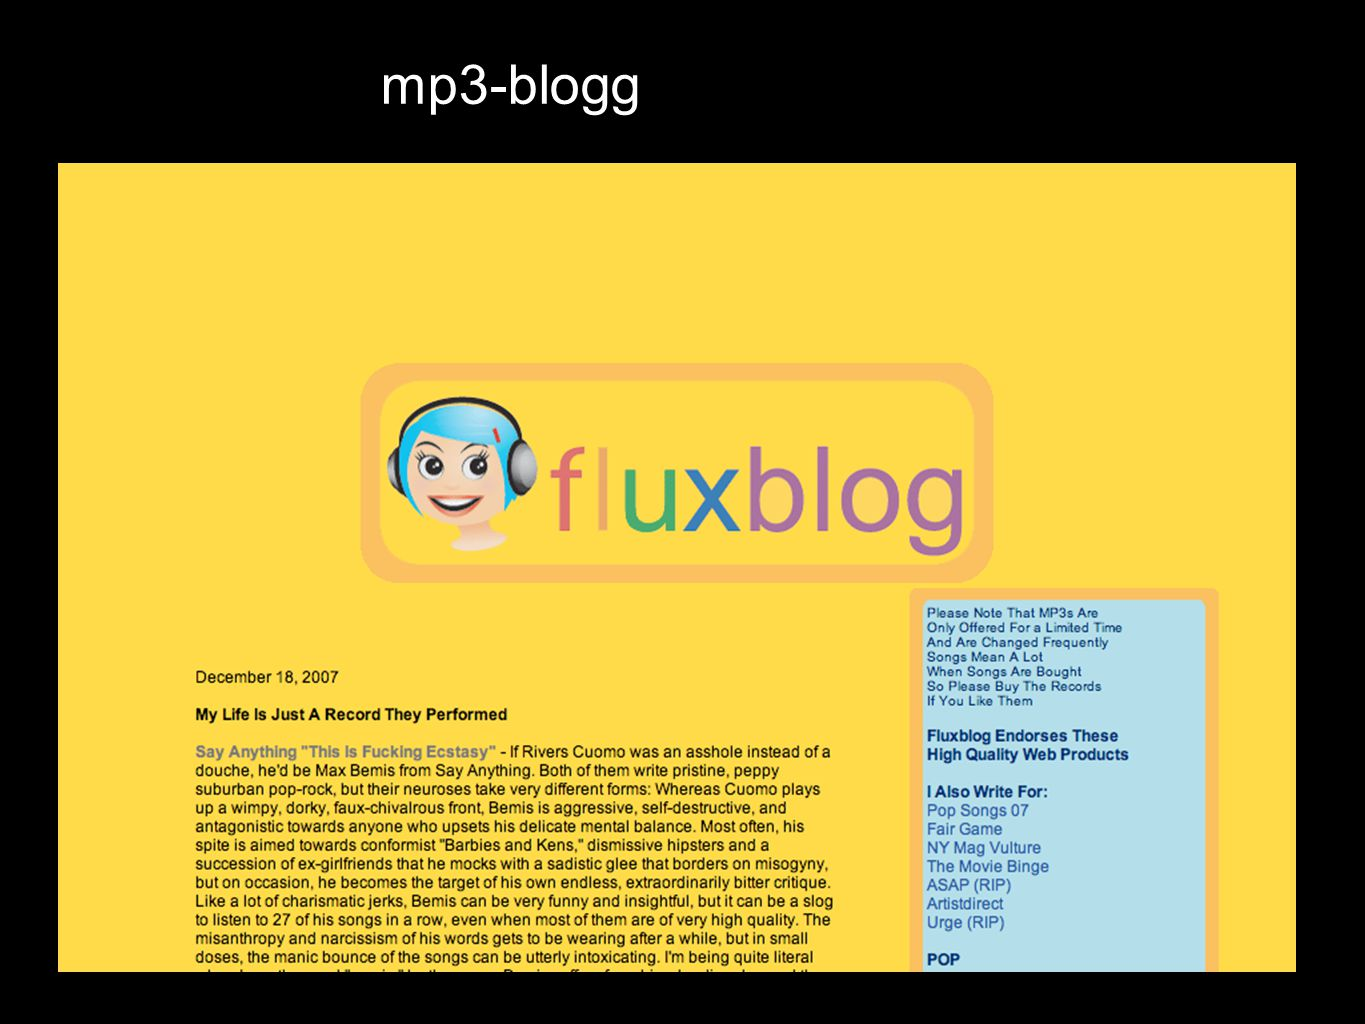 mp3-blogg